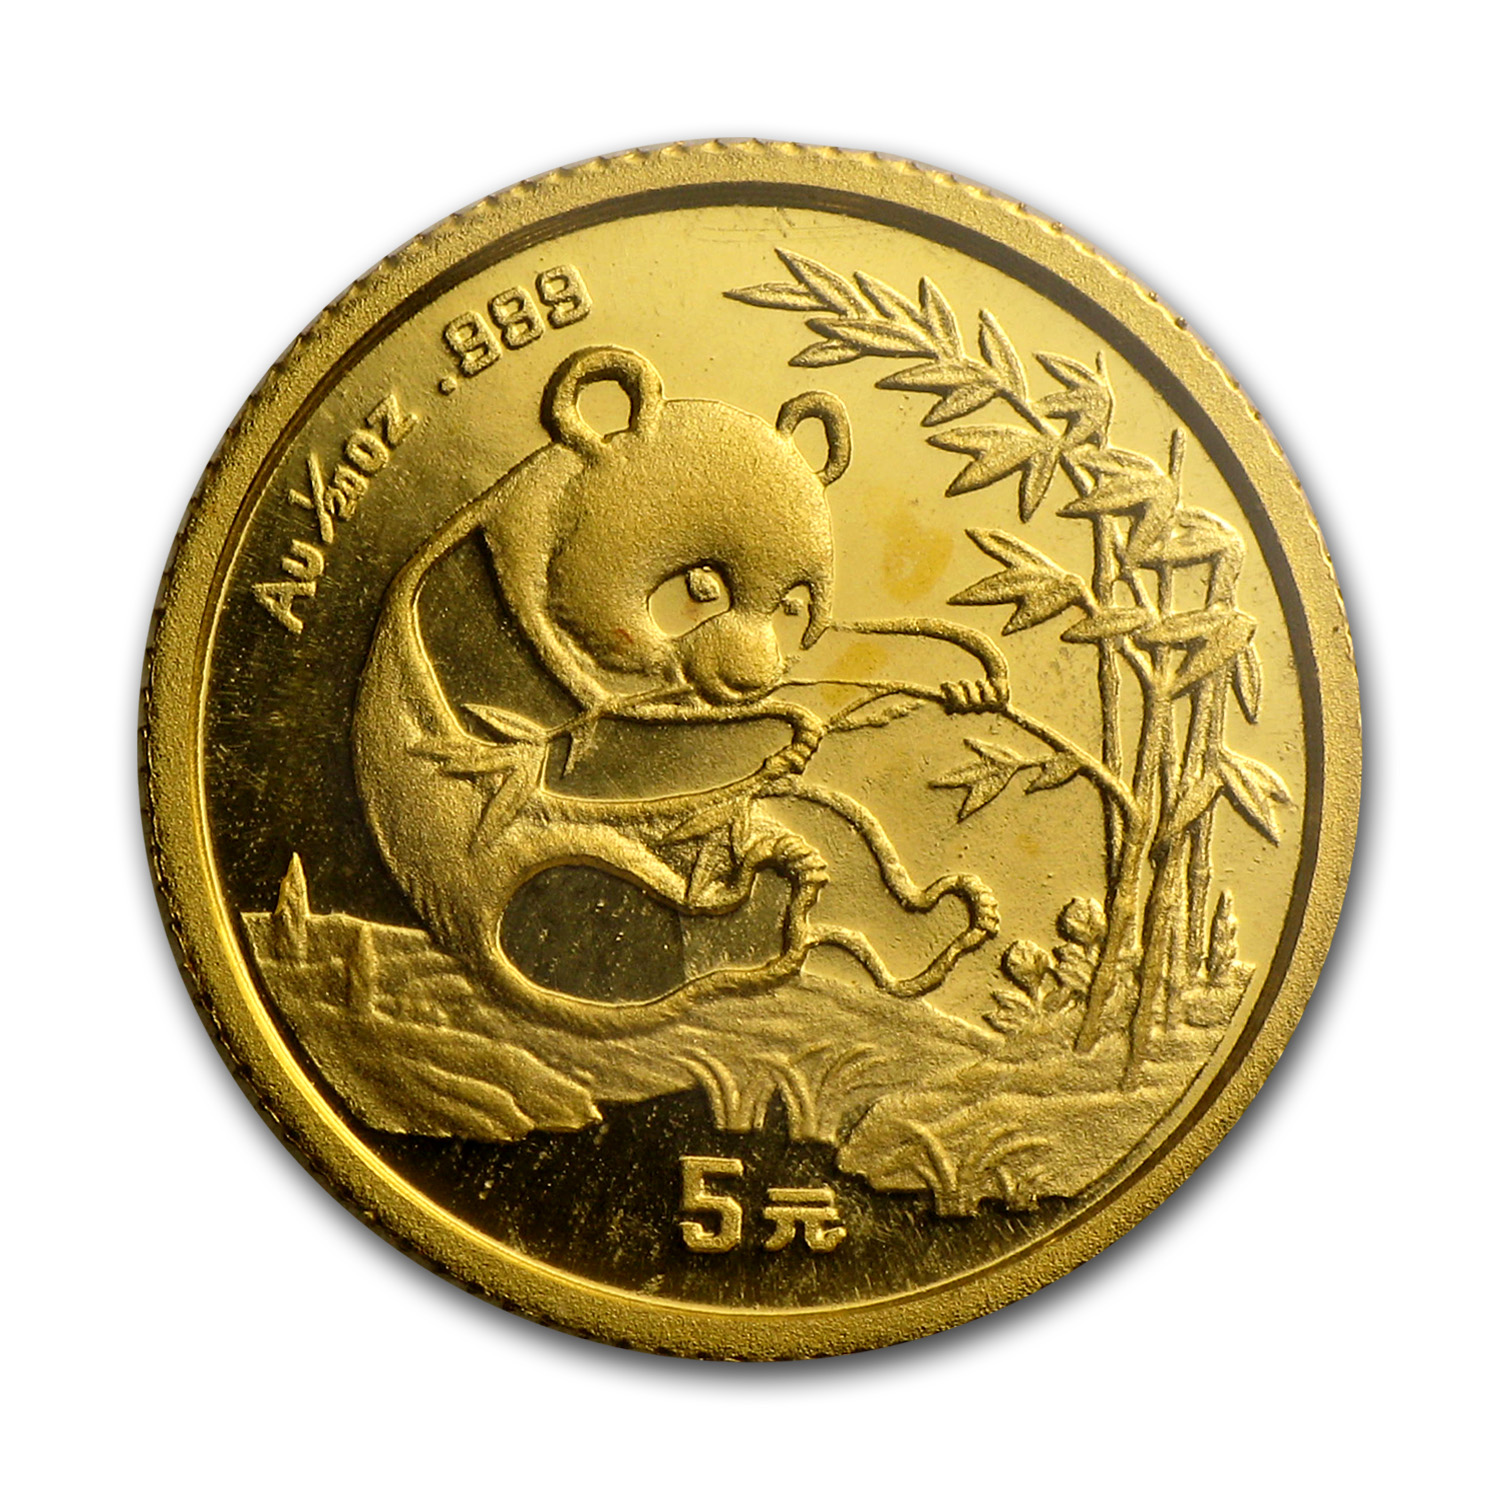 1994 China 1/20 oz Gold Panda Small Date BU (Sealed)